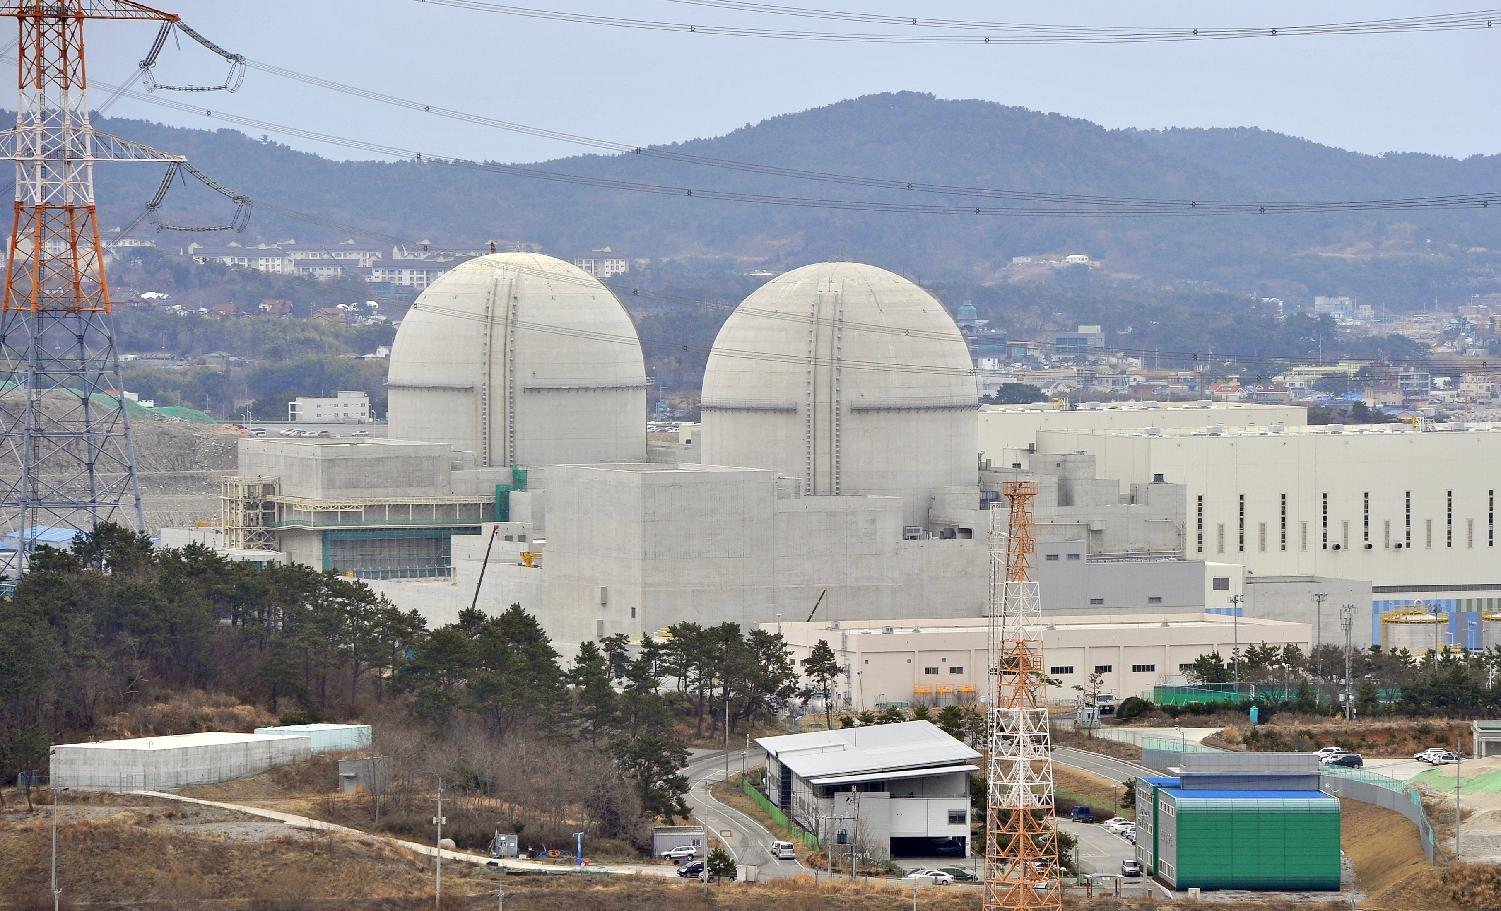 S. Korea says nuclear reactors safe after cyber-attacks